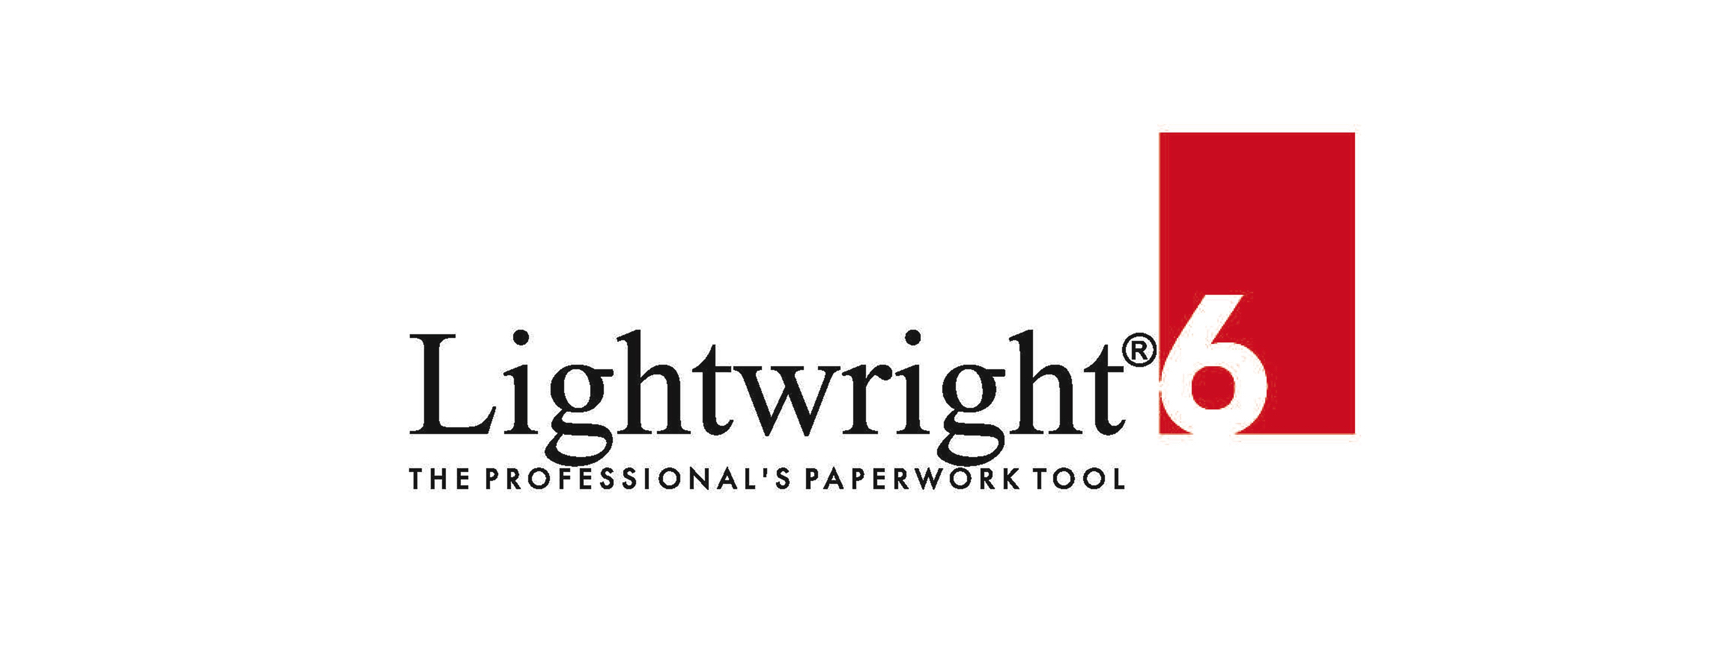 lightwright6